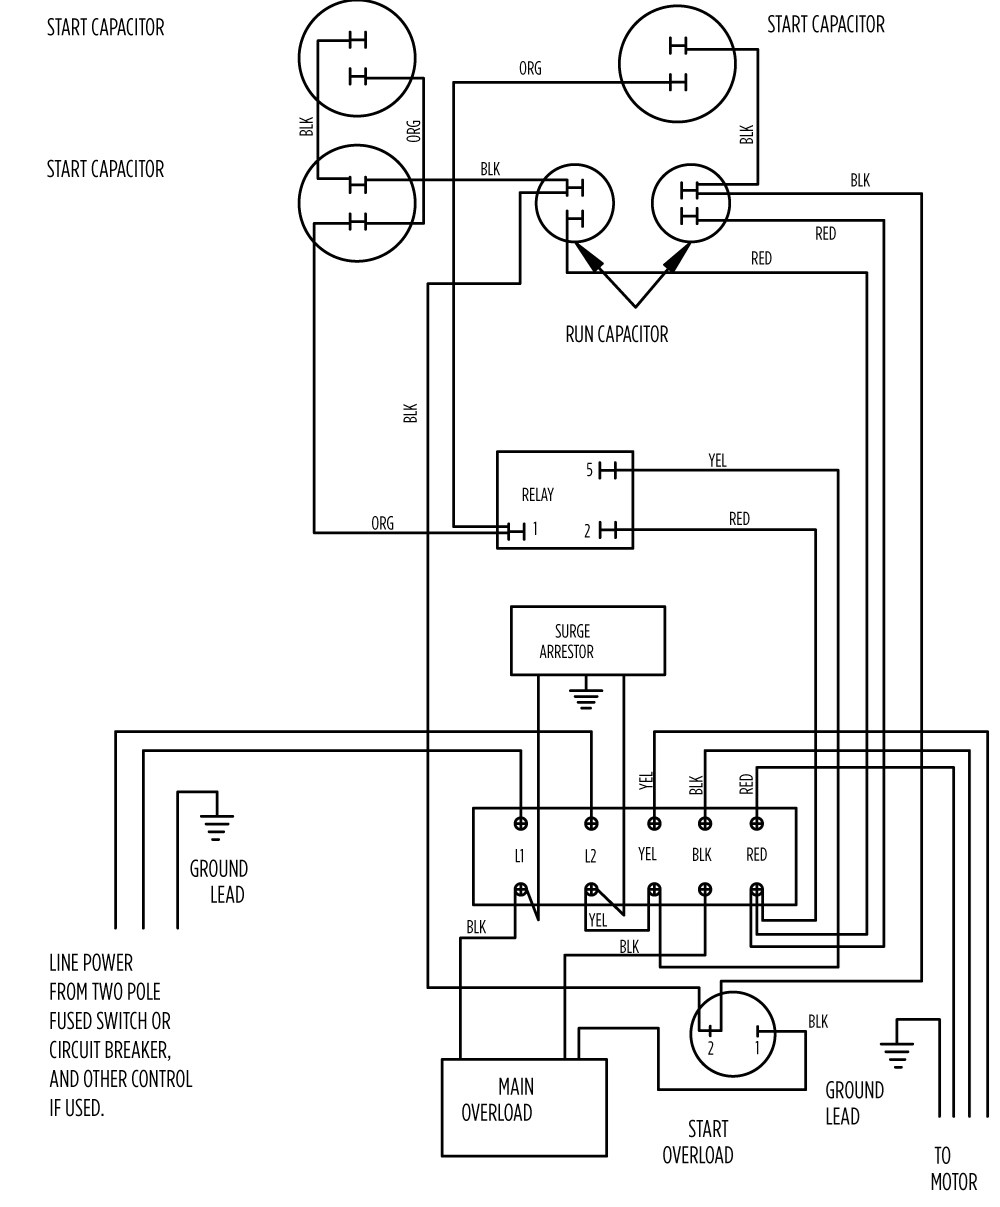 10 hp standard 282 202 9210 or 282 202 9230_aim gallery?format=jpg&quality=80 aim manual page 57 single phase motors and controls motor electric motor wiring diagram at aneh.co